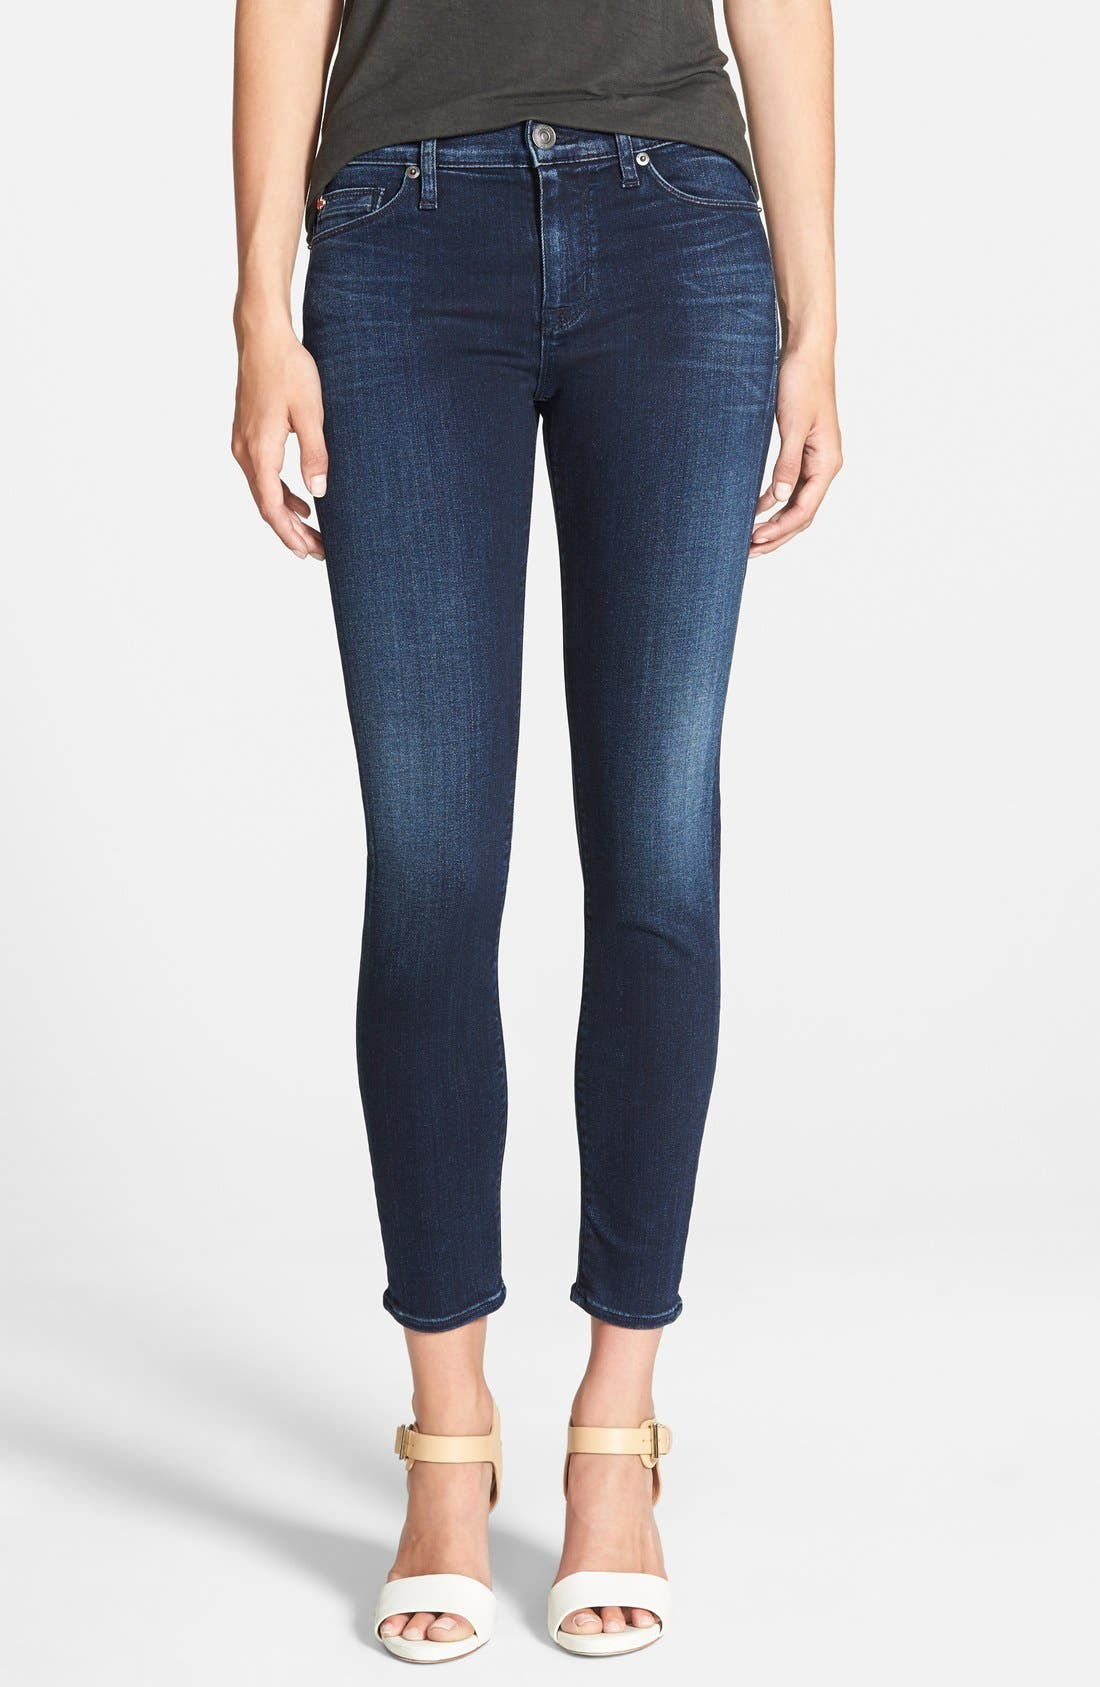 'Nico' Ankle Skinny Jeans,                             Main thumbnail 7, color,